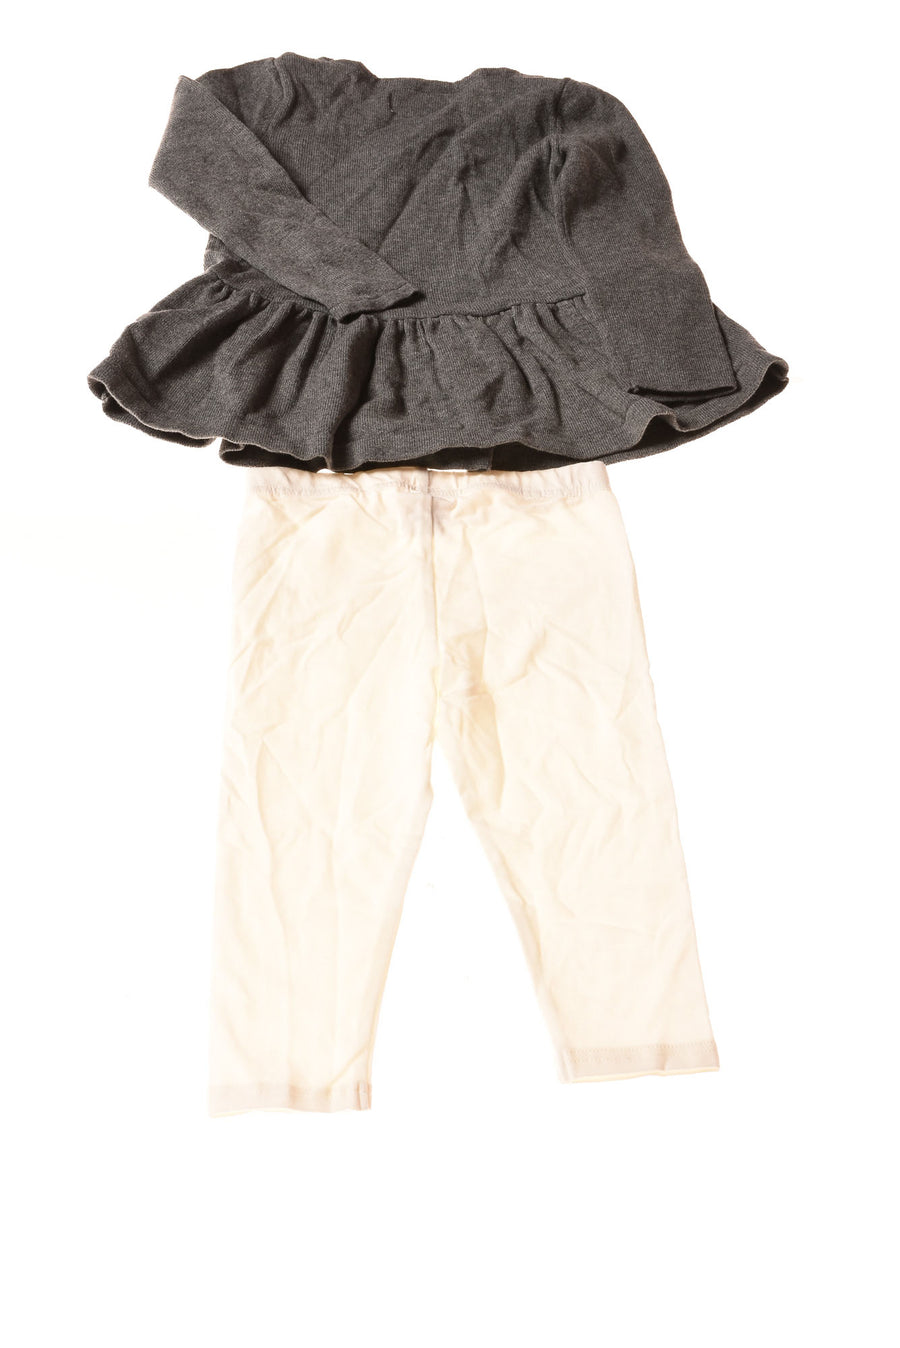 USED Wonder Kids Toddler Girl's Outfit 2T Gray & White